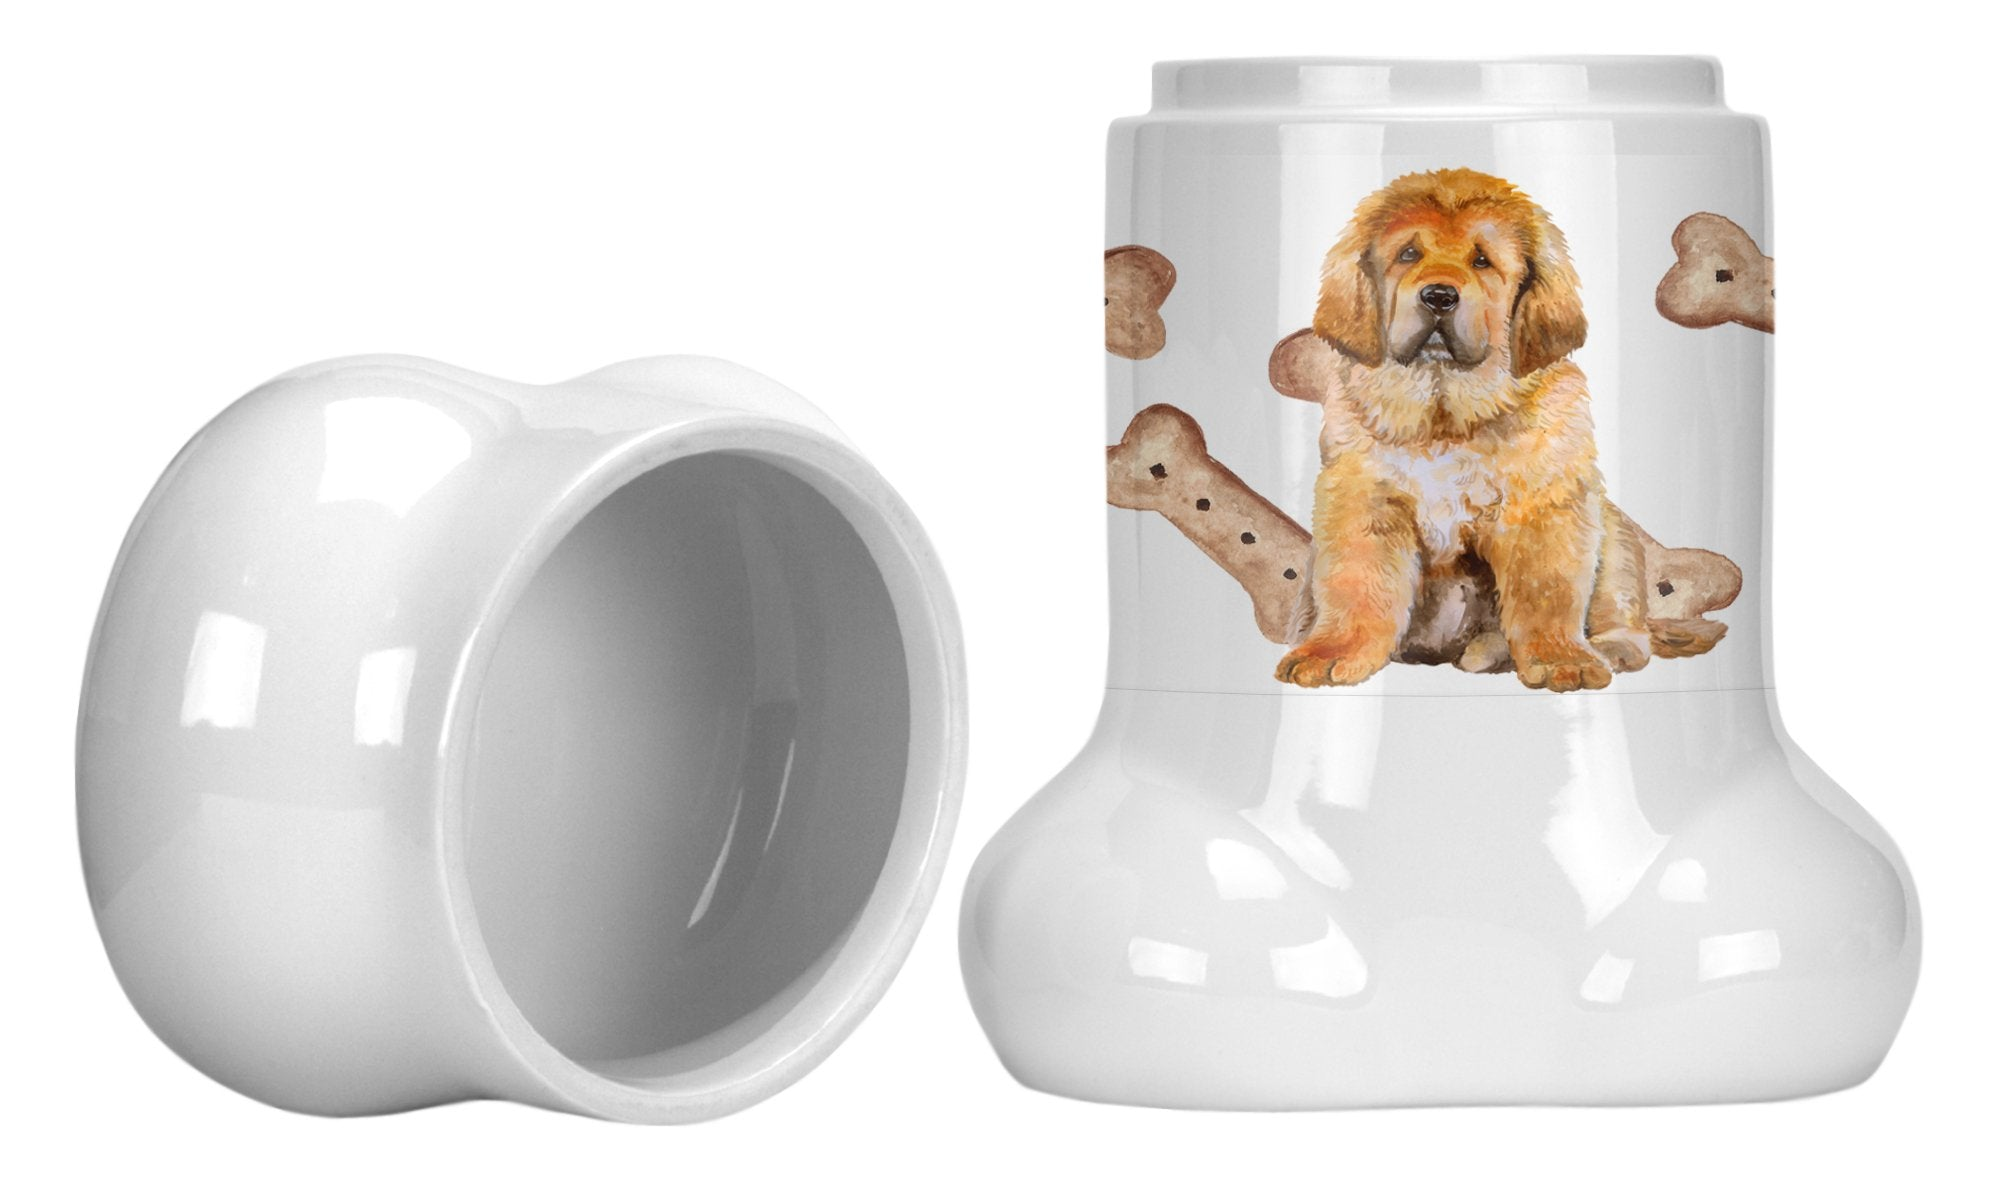 Tibetan Mastiff Bone Shaped Treat Jar CK2300BSTJ by Caroline's Treasures